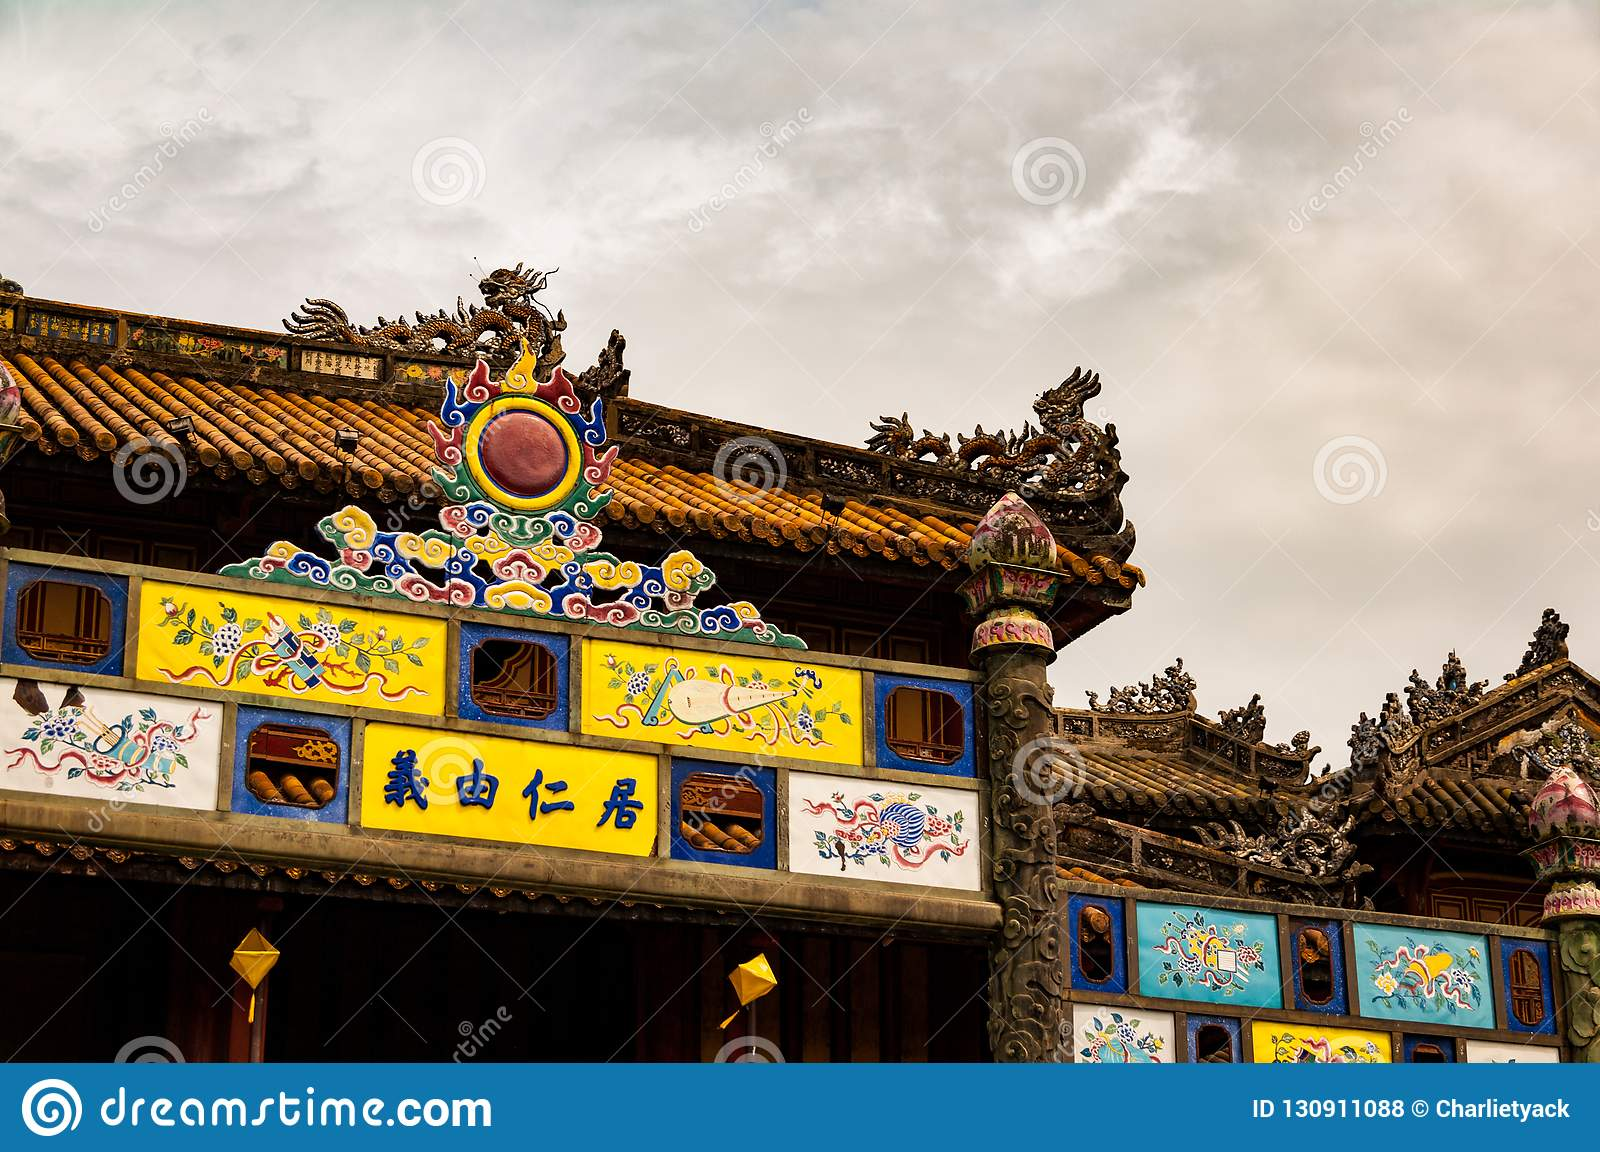 Detail of the ornate Gate to the Forbidden City Pagodas in Hue, Vietnam